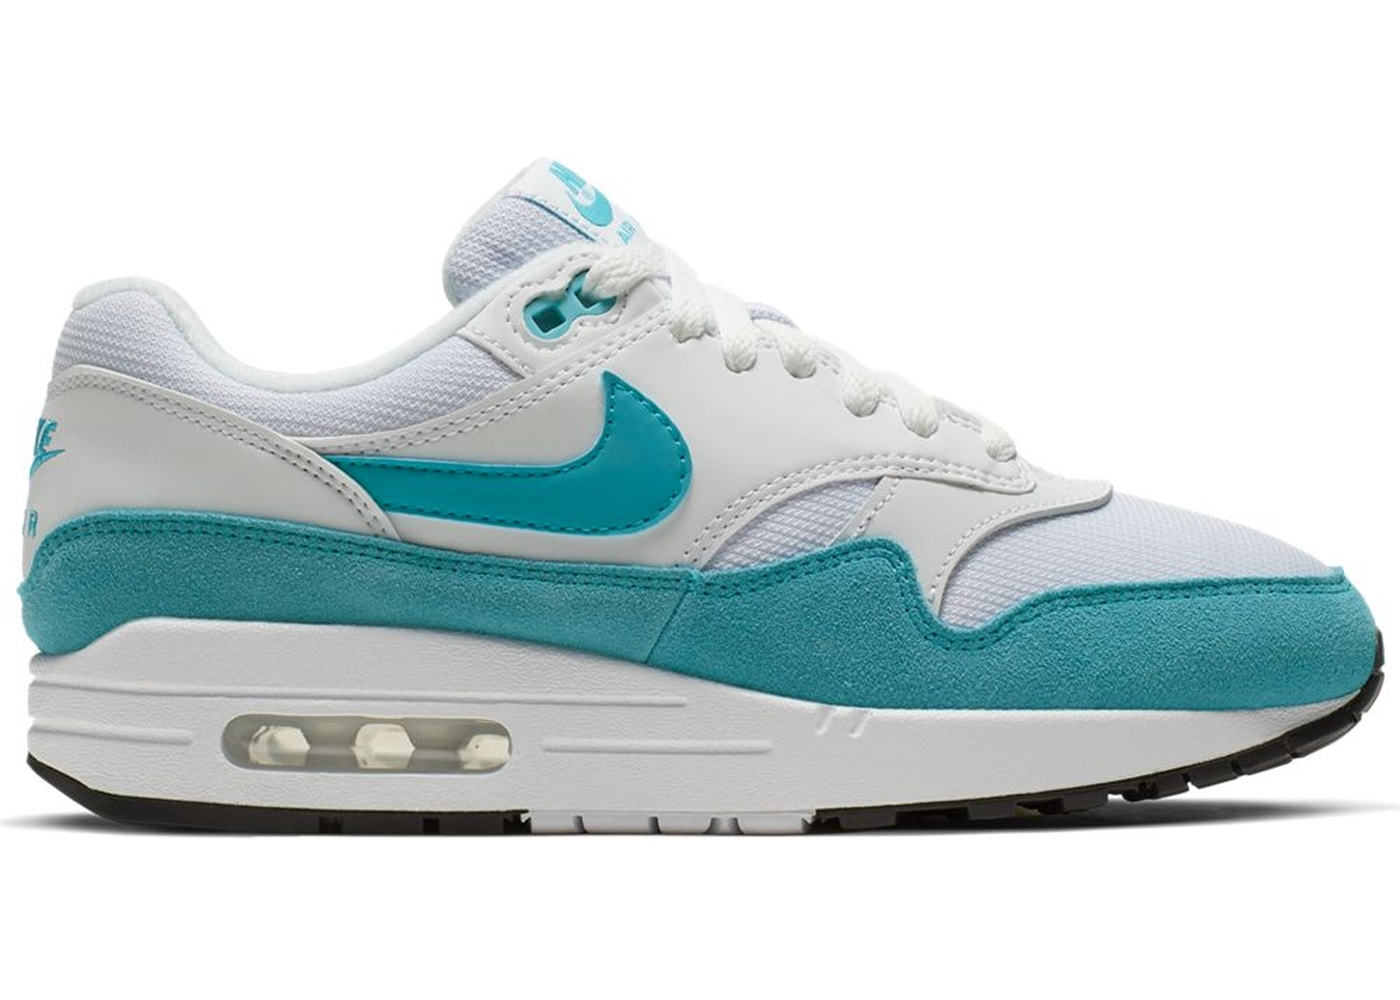 This Light Blue Fury Nike Air Max 1 Is For The Ladies